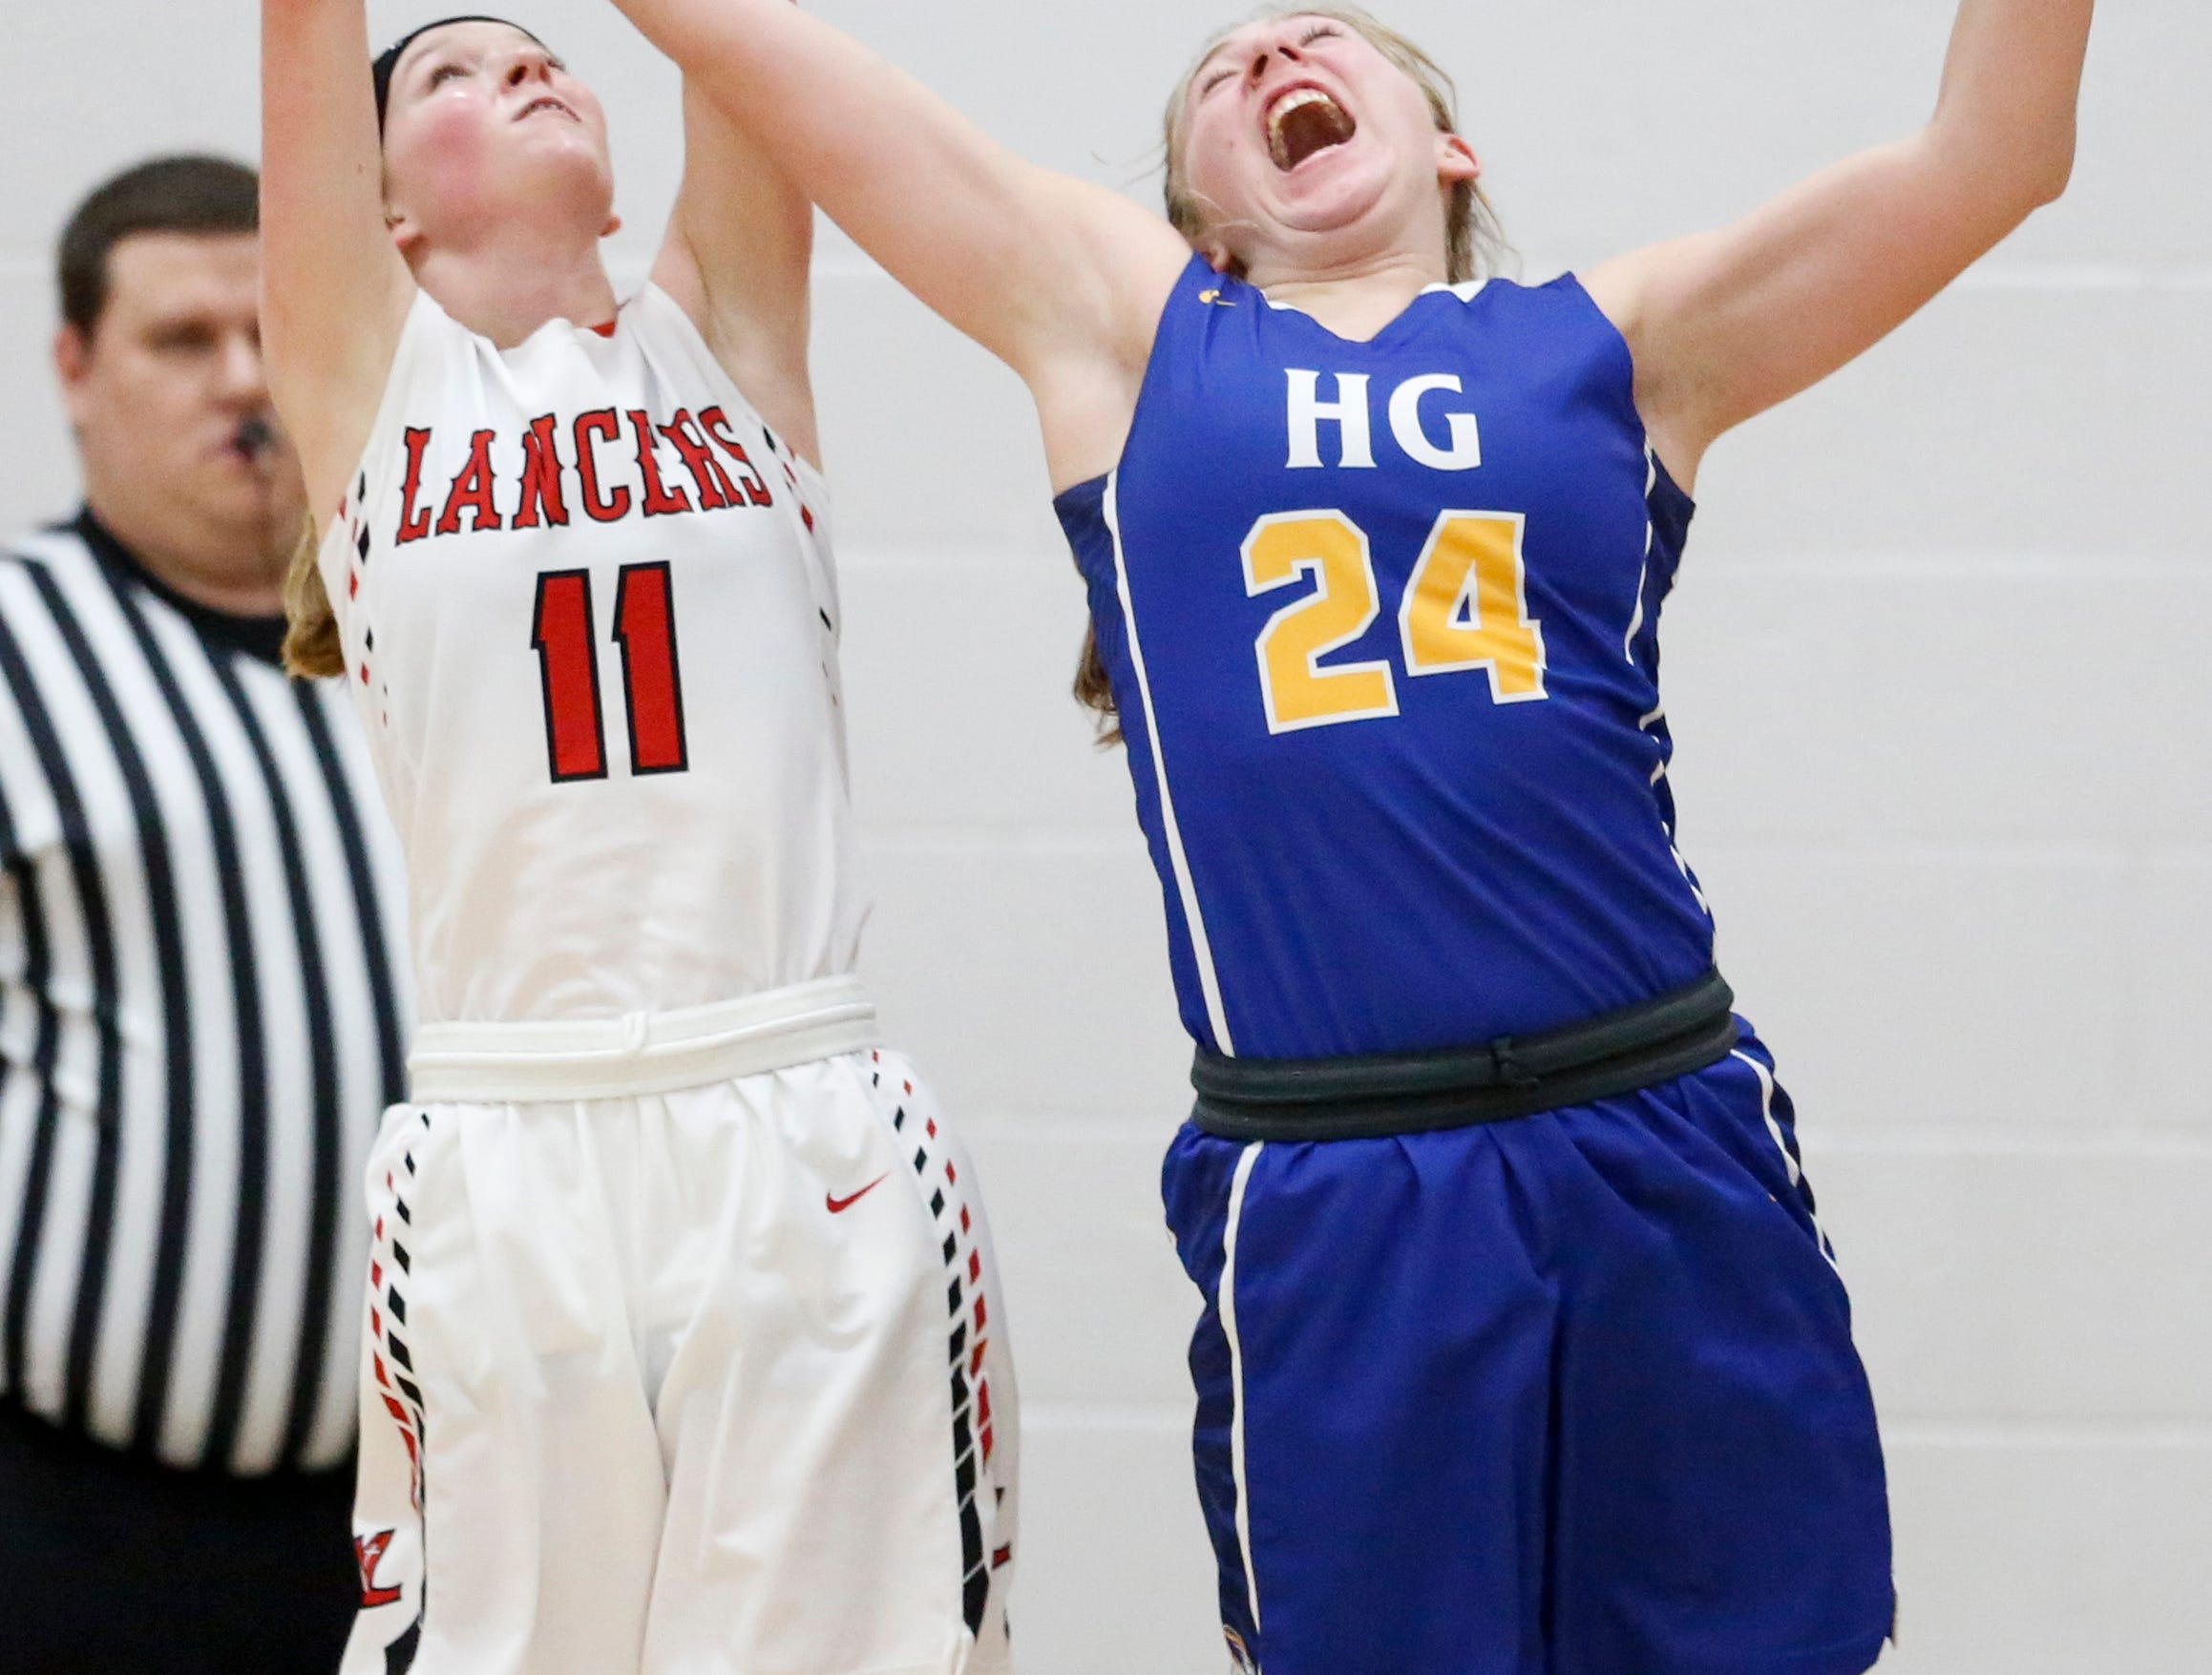 Manitowoc Lutheran's Lydia Hecker battles Howards Grove's Kayla Bender for a rebound at Manitowoc Lutheran High School Tuesday, December 18, 2018, in Manitowoc, Wis. Joshua Clark/USA TODAY NETWORK-Wisconsin